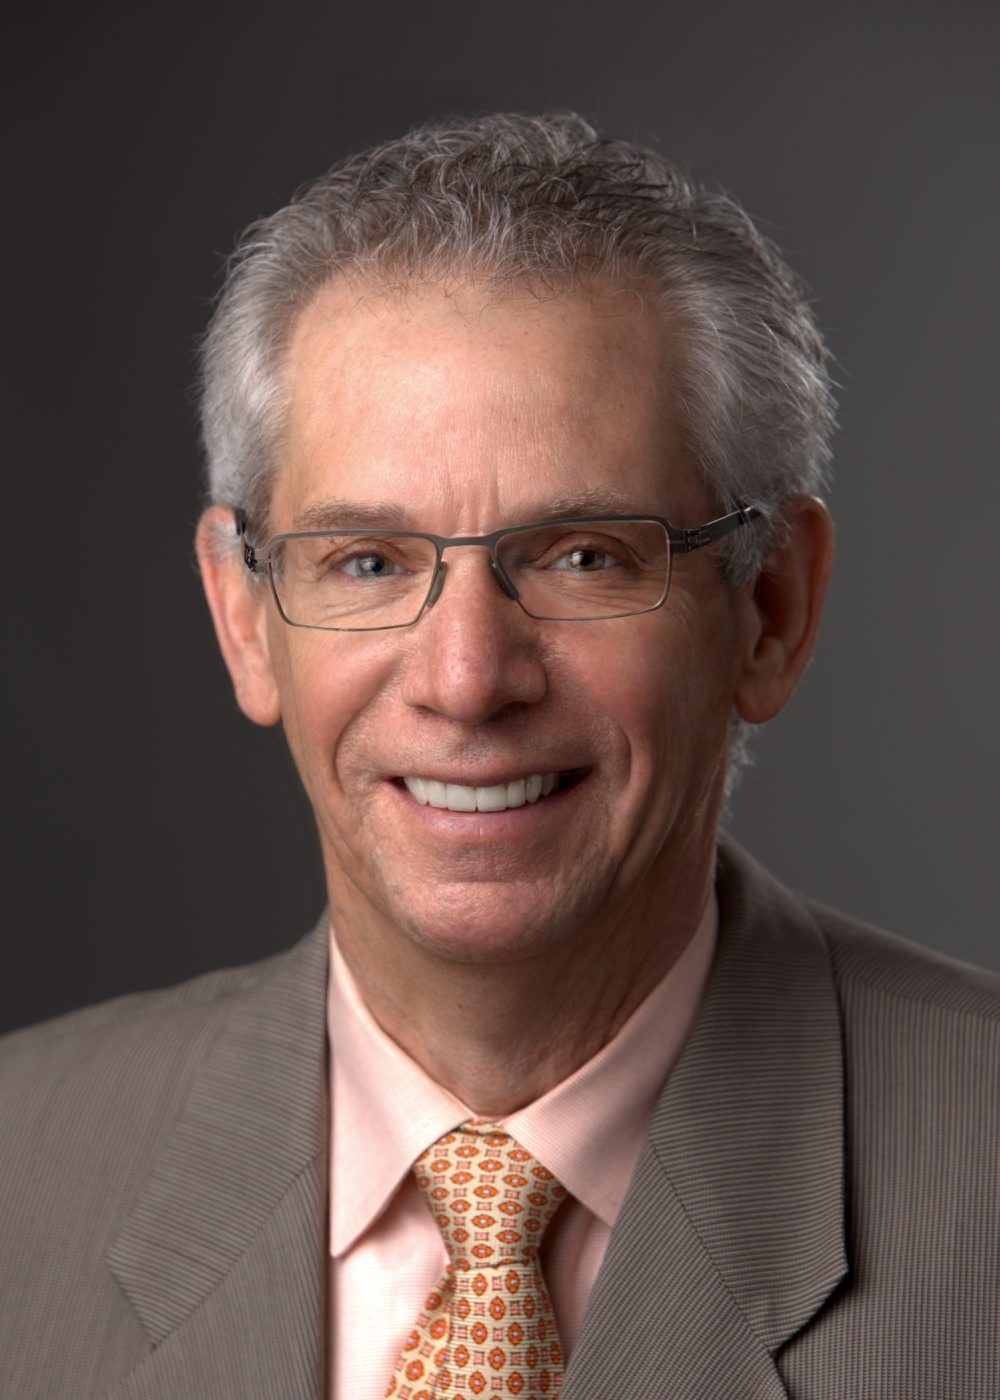 Dr. Michael W. Cropp attributes high ranking to Independent Health's relationships with providers.